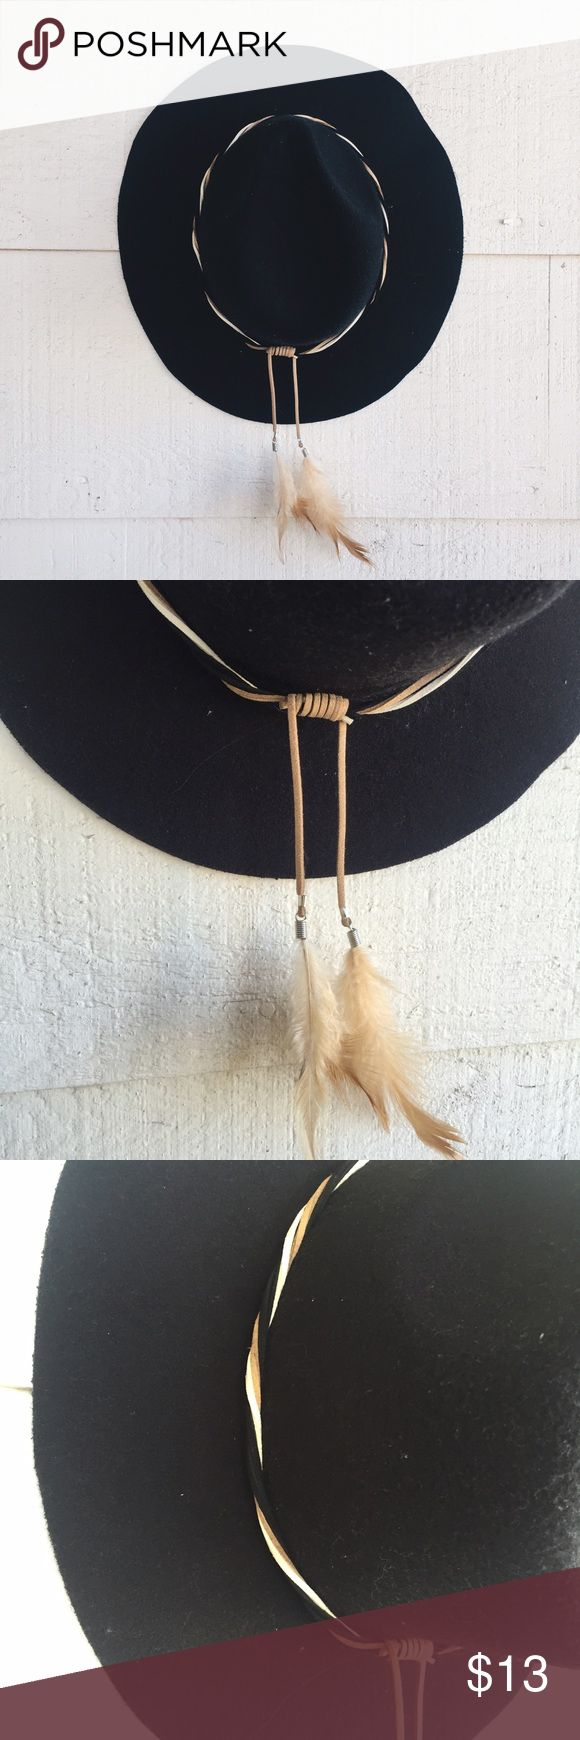 Black fedora hat Feather band Accessories Hats